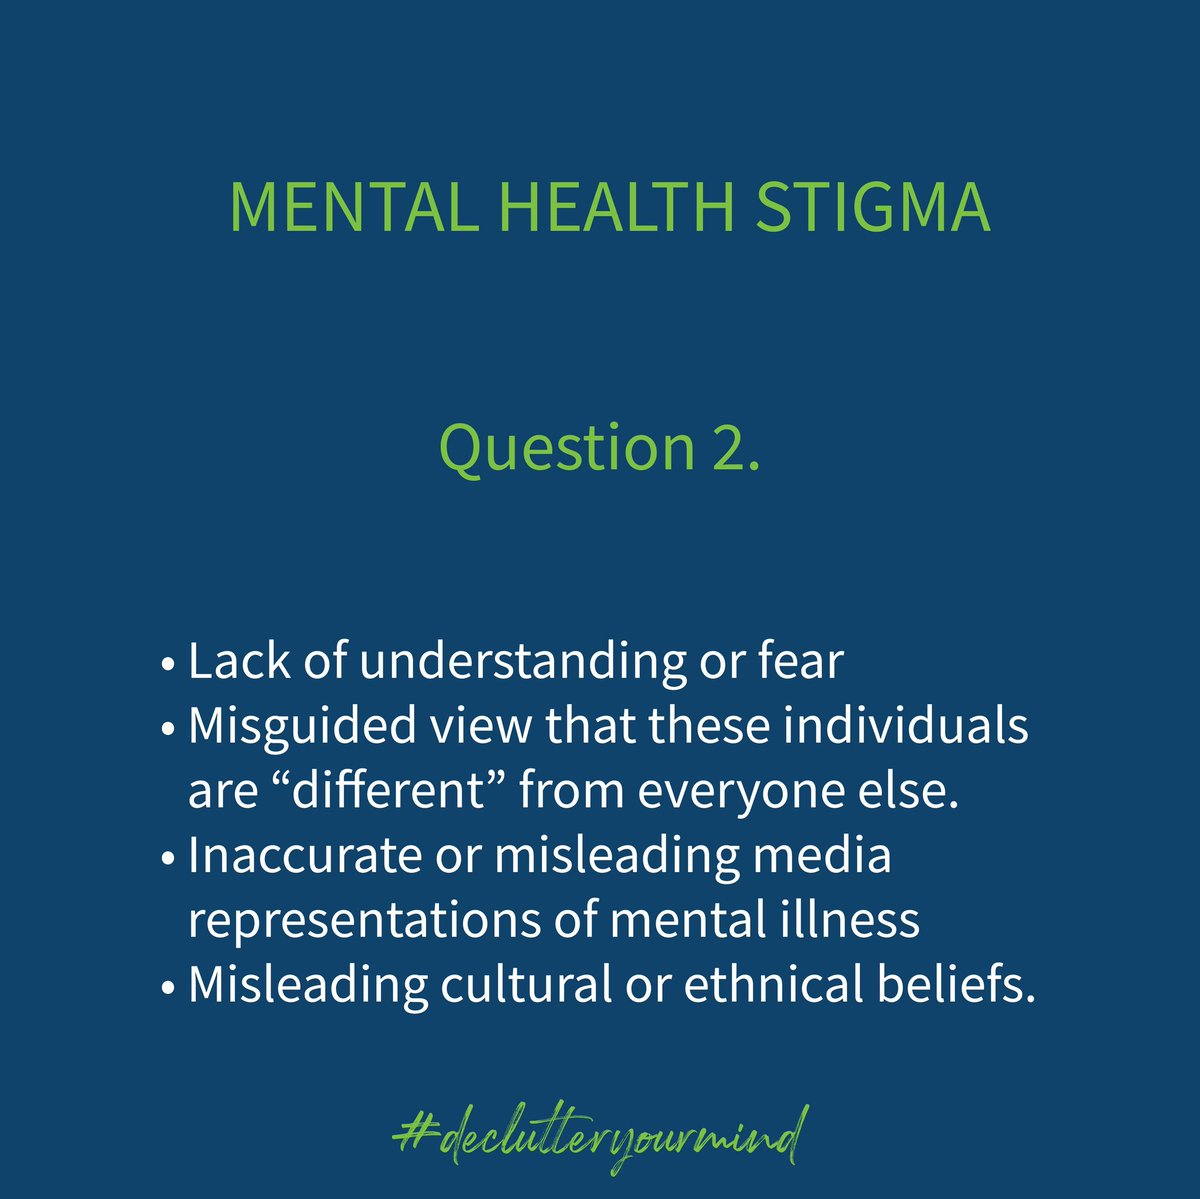 @HisiaPsychology @MUnsilenced @haven_mental Mental Health stigma is prevalent due to a couple of reasons such as.. https://t.co/OLjYFIAMB6